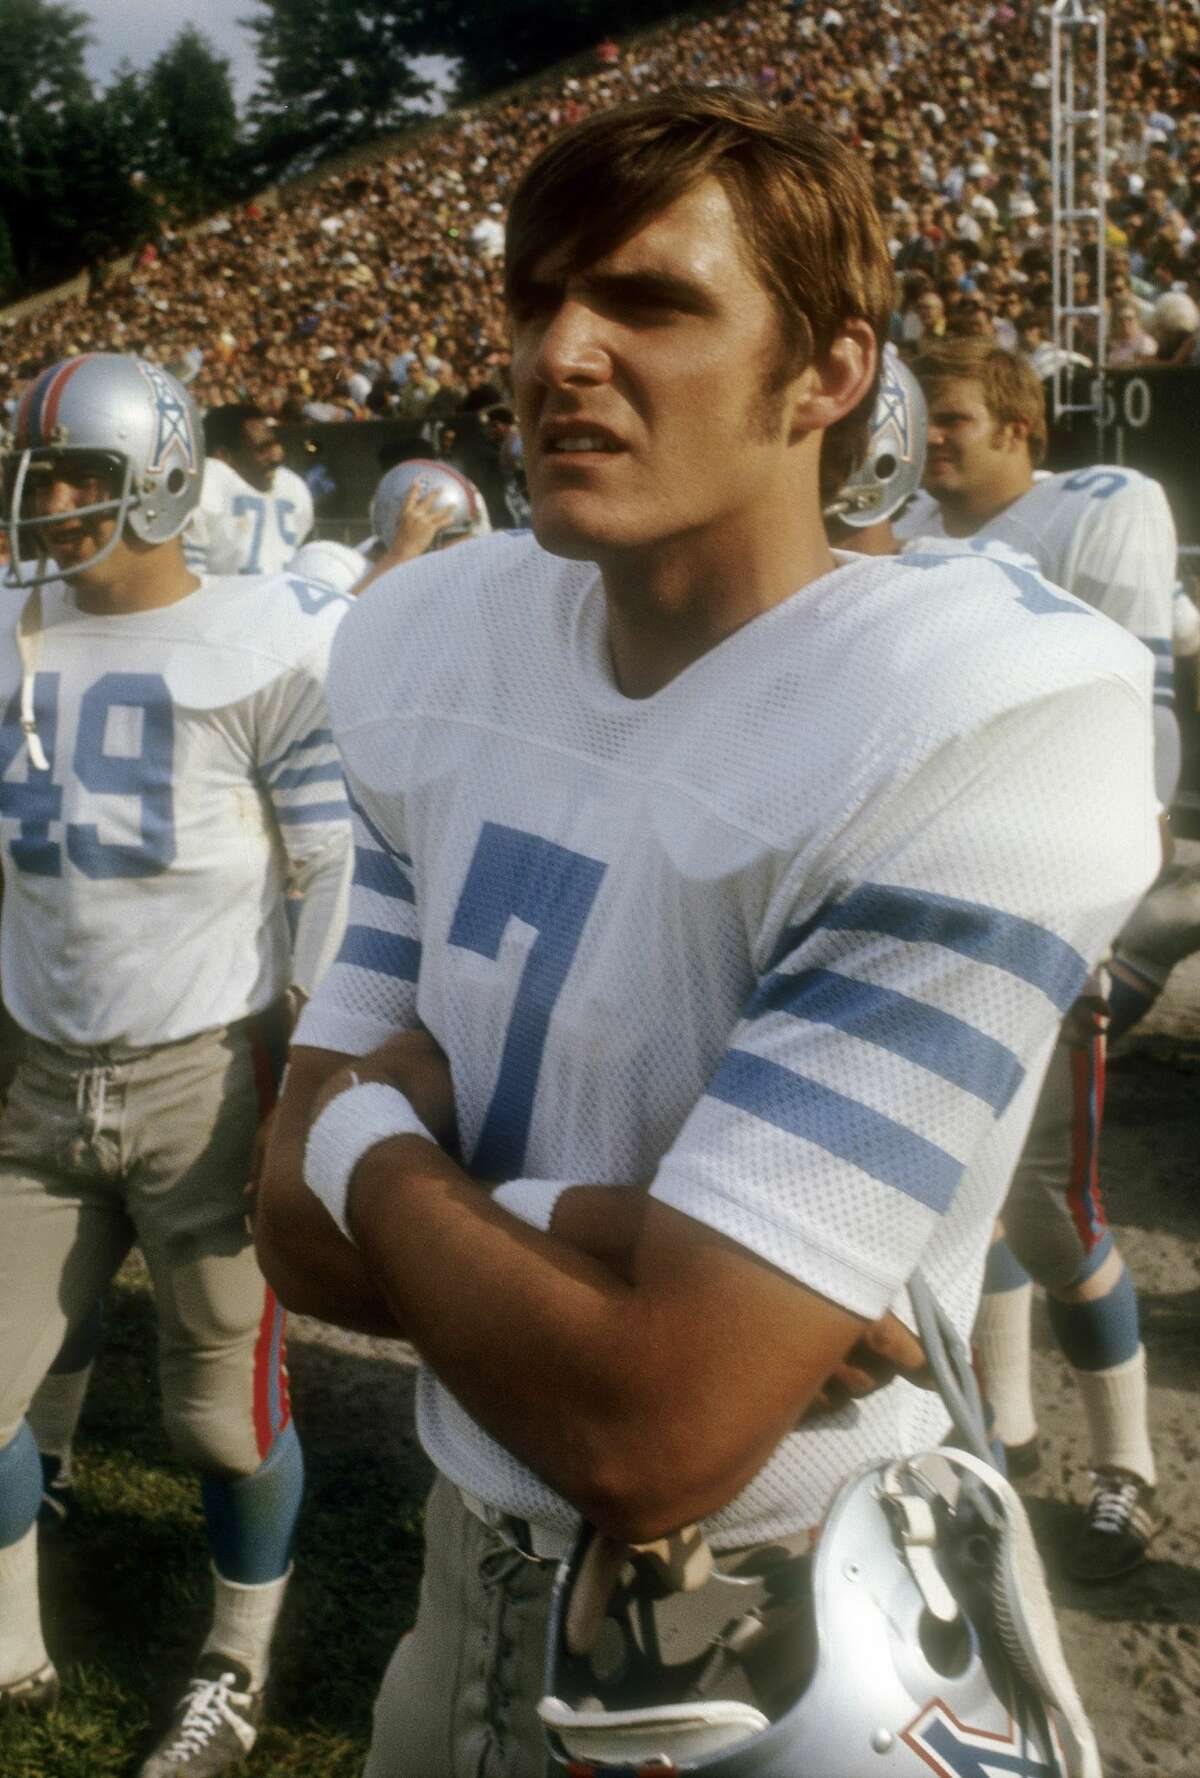 Quarterback Dan Pastorini #7 of the Houston Oilers watches the action from the sidelines during an NFL football game circa 1971. Pastorini played for the Oilers from 1971-79.